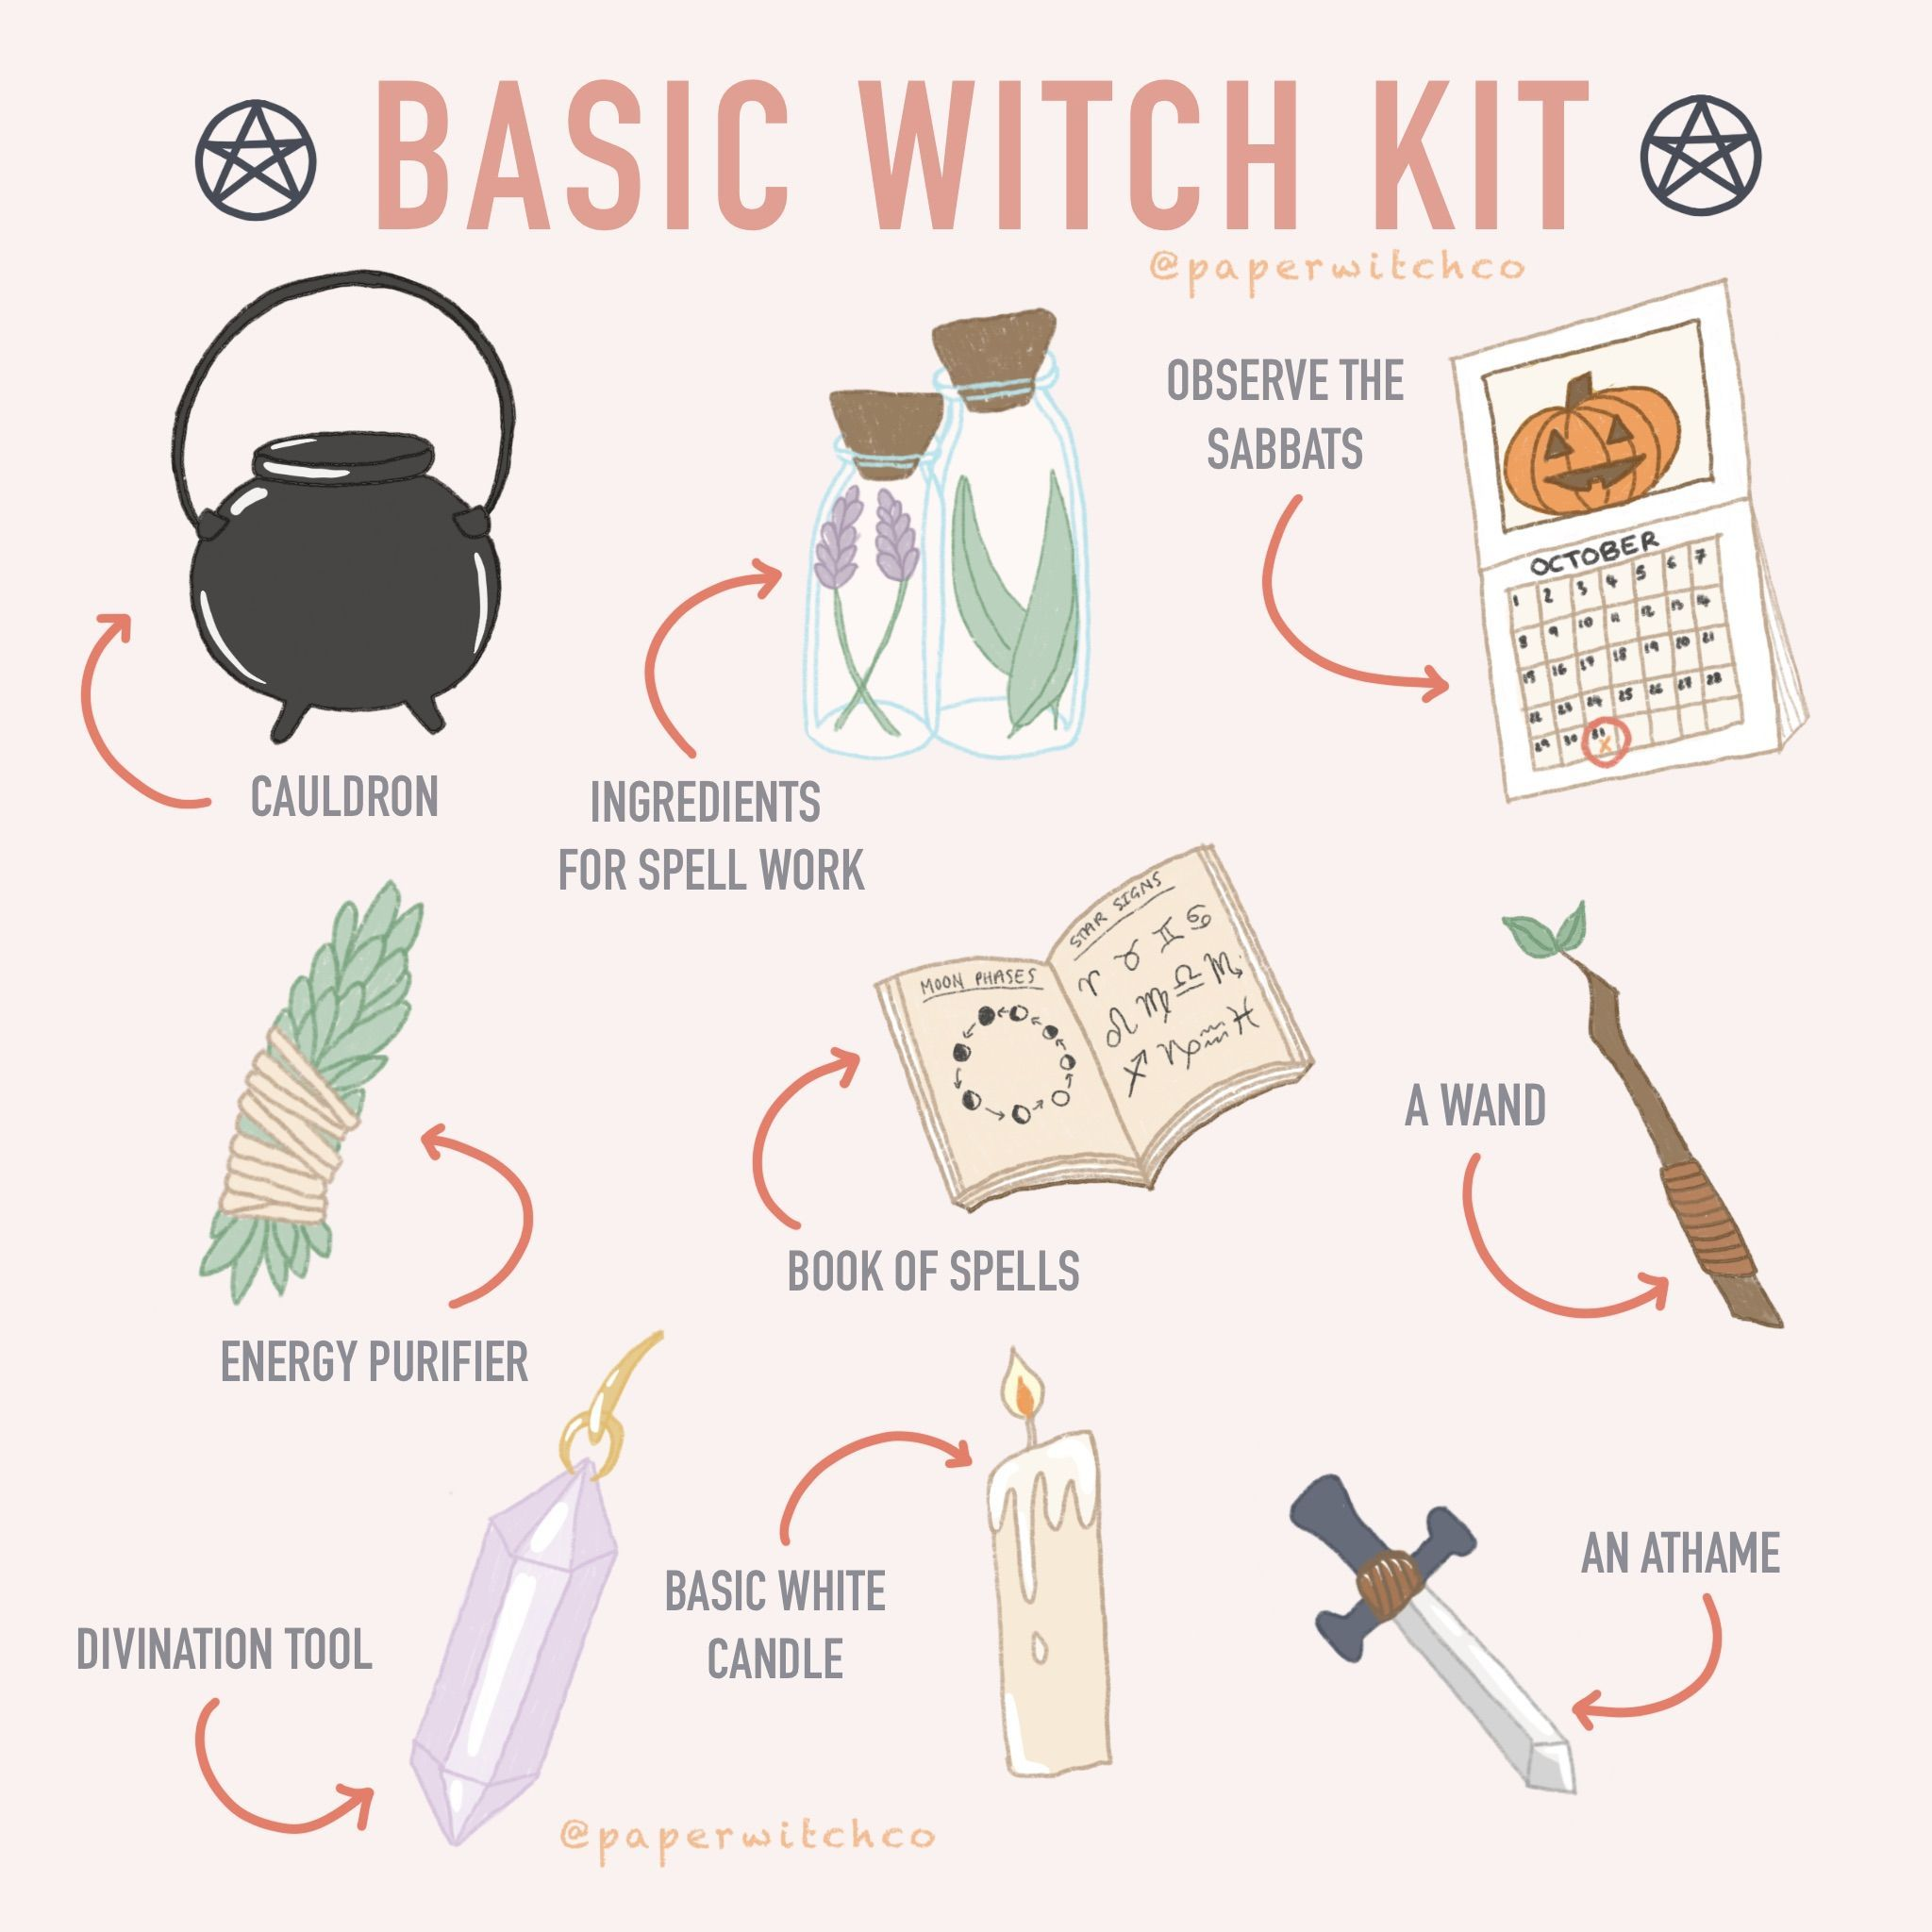 Etsy listing for witches planner stickers #witch #witchcraft #basicwitch #witchy #pagan #wiccanEtsy #listing #for #witches #planner #stickers ##witch ##witchcraft ##basicwitch ##witchy ##pagan ##wiccan #witchy